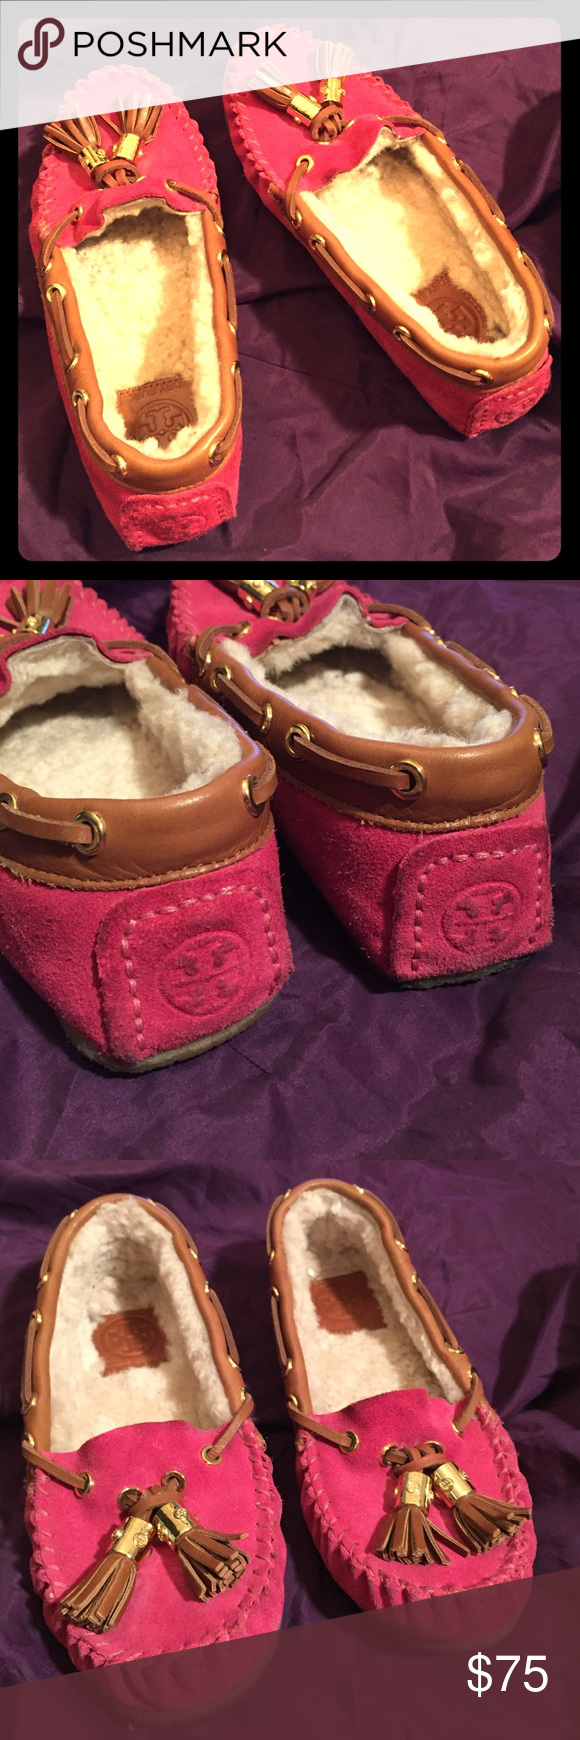 Tory Burch Dee Dee Moccasin Authentic, gently worn Magenta Pink Tory Burch Dee Dee moccasins. Suede upper, shearling lining, leather trim, tassel logo detail with gold hardware. Crepe rubber sole suitable for outdoor wear. No trades, PP or M. I'm a fast shipper!   Tory Burch Shoes Moccasins